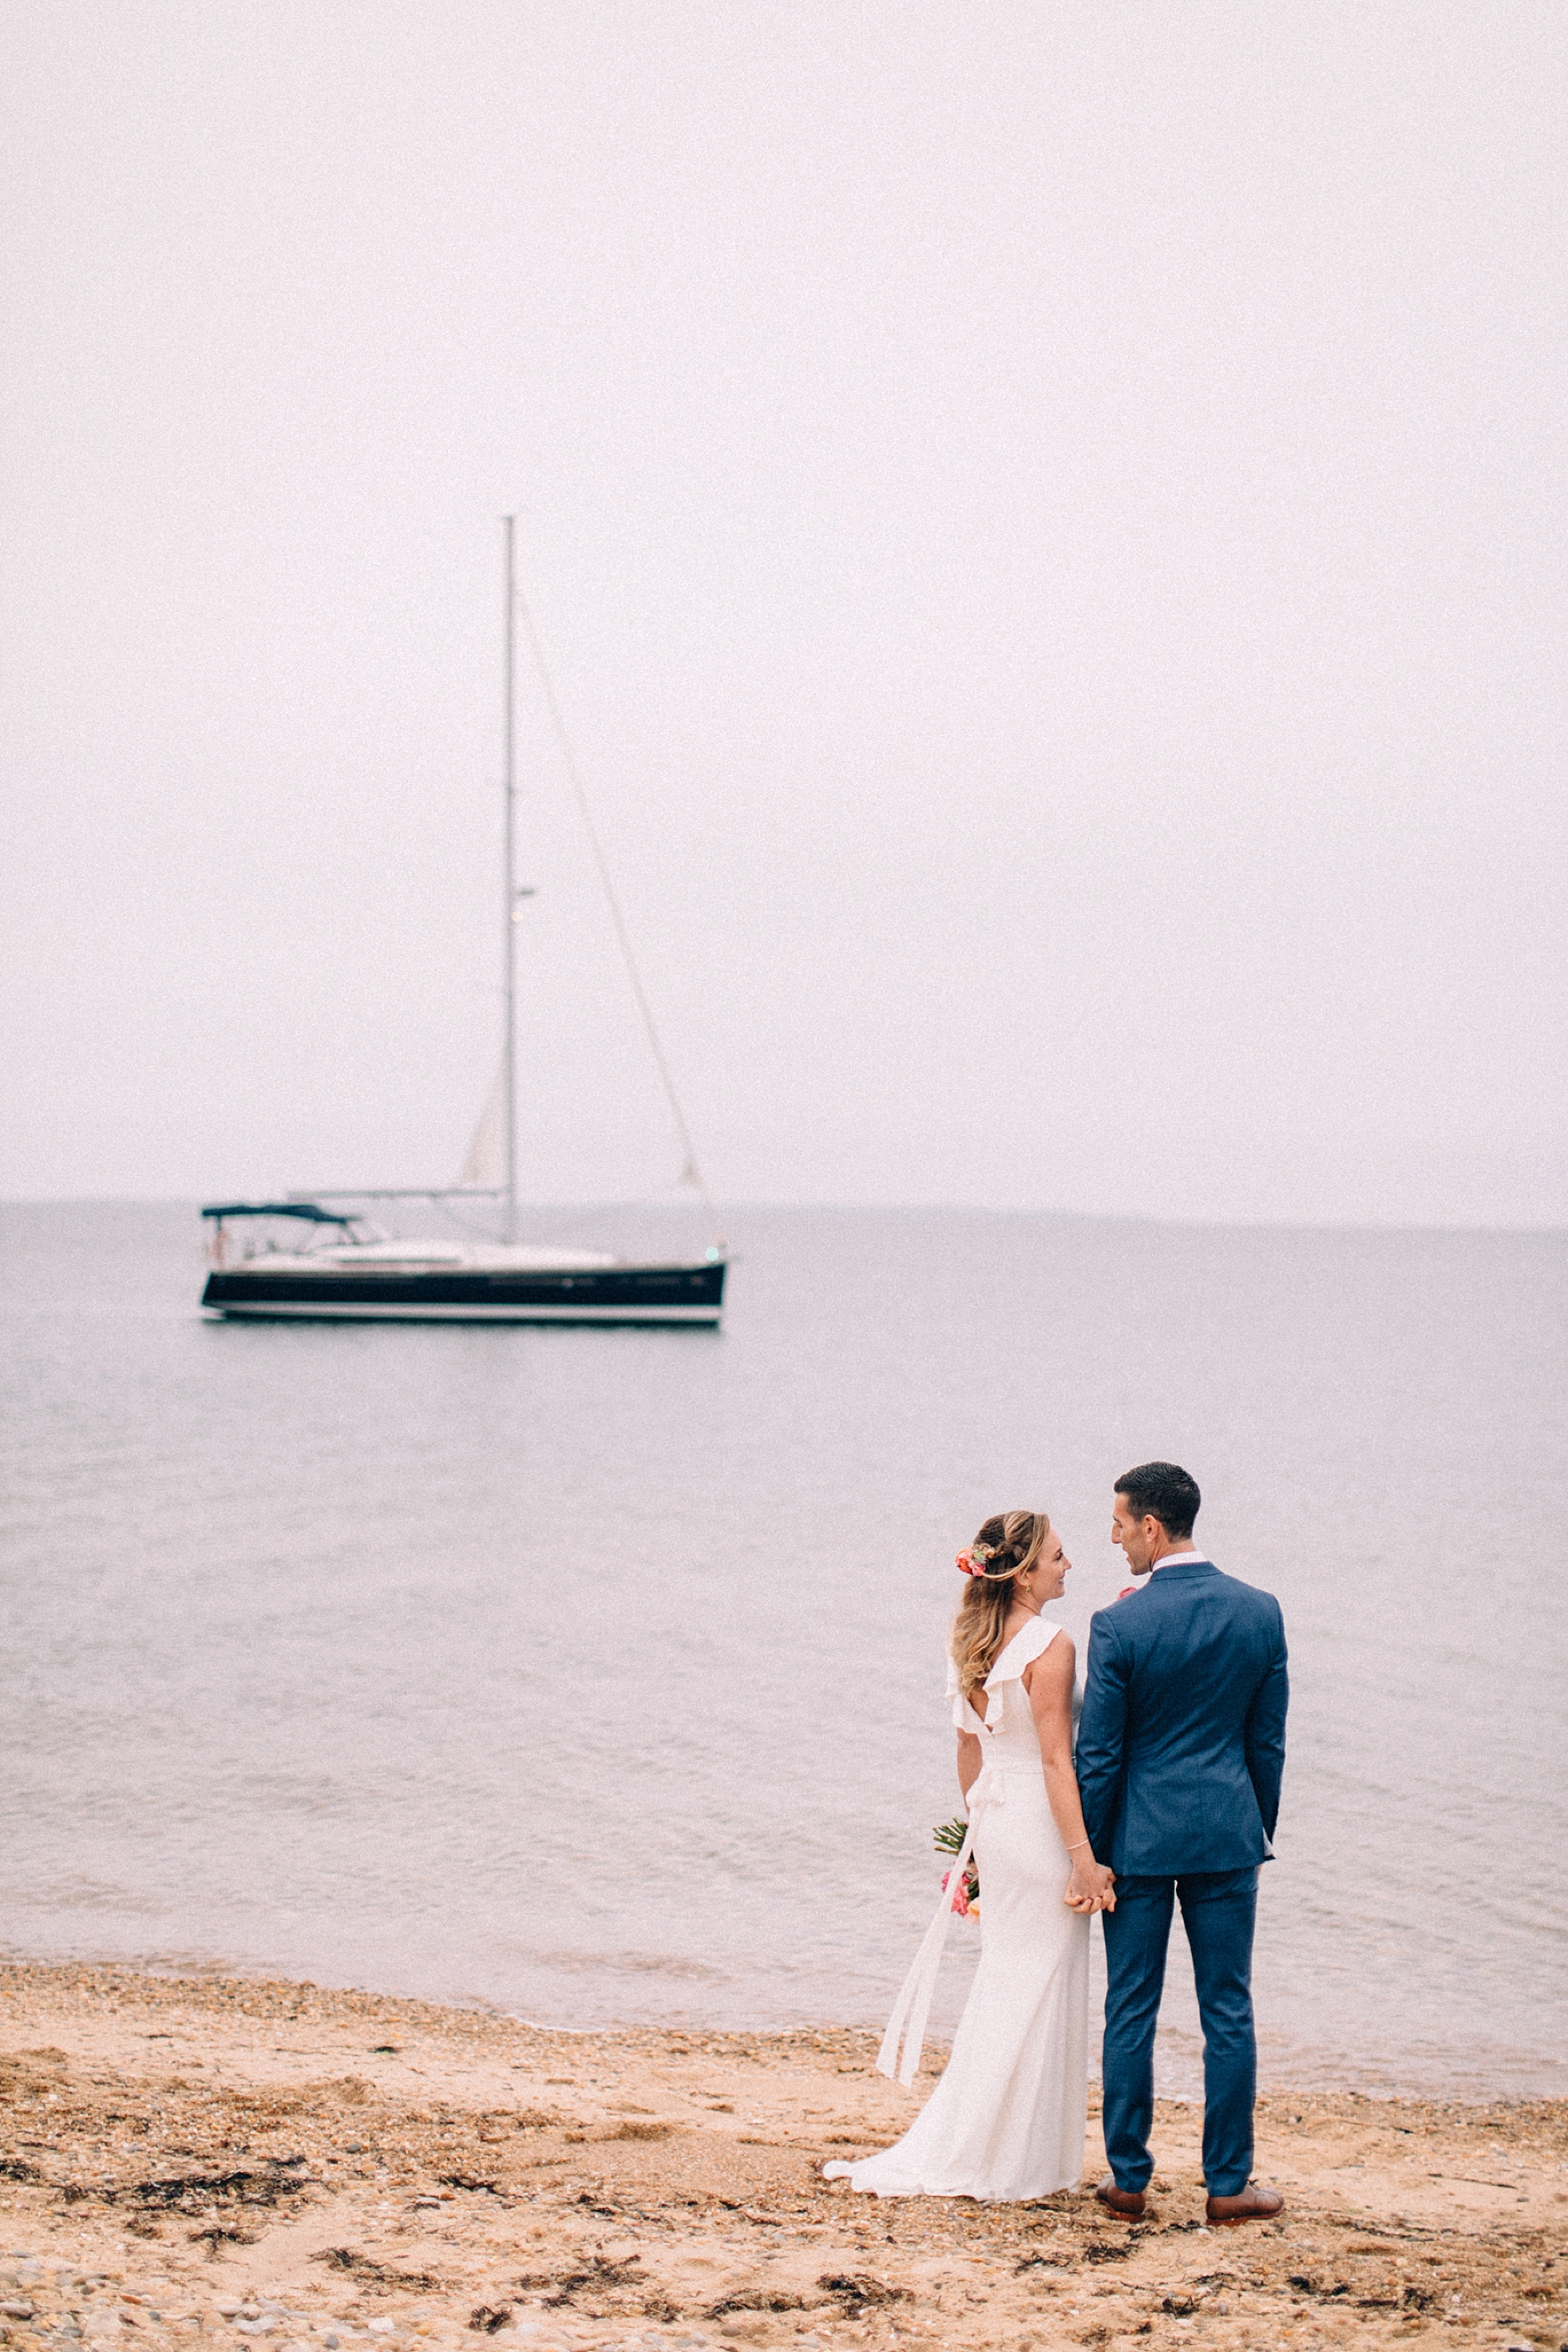 montauk-wedding-photography-rainy-navy-beach_0044.jpg